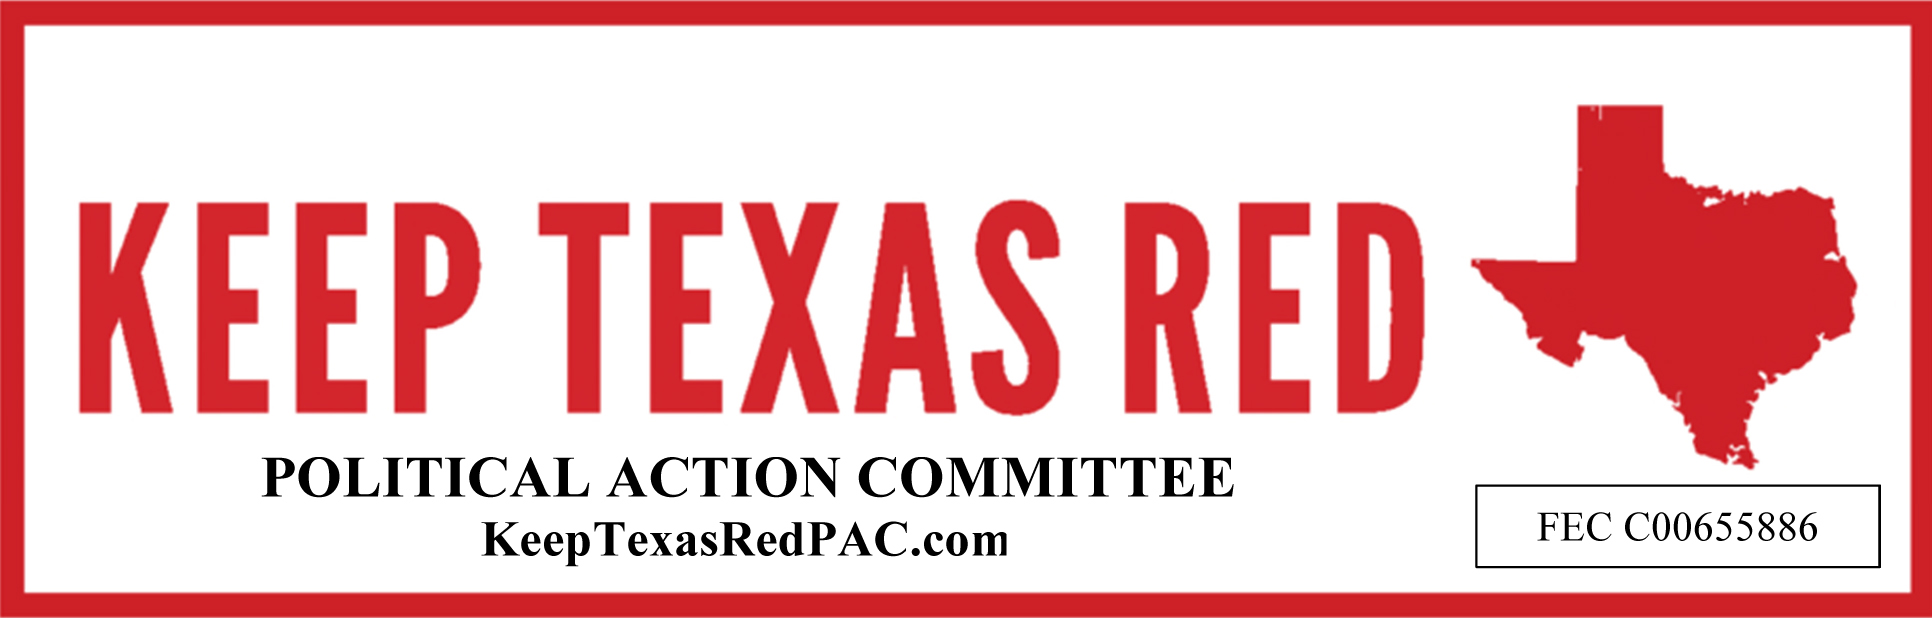 Keep Texas Red